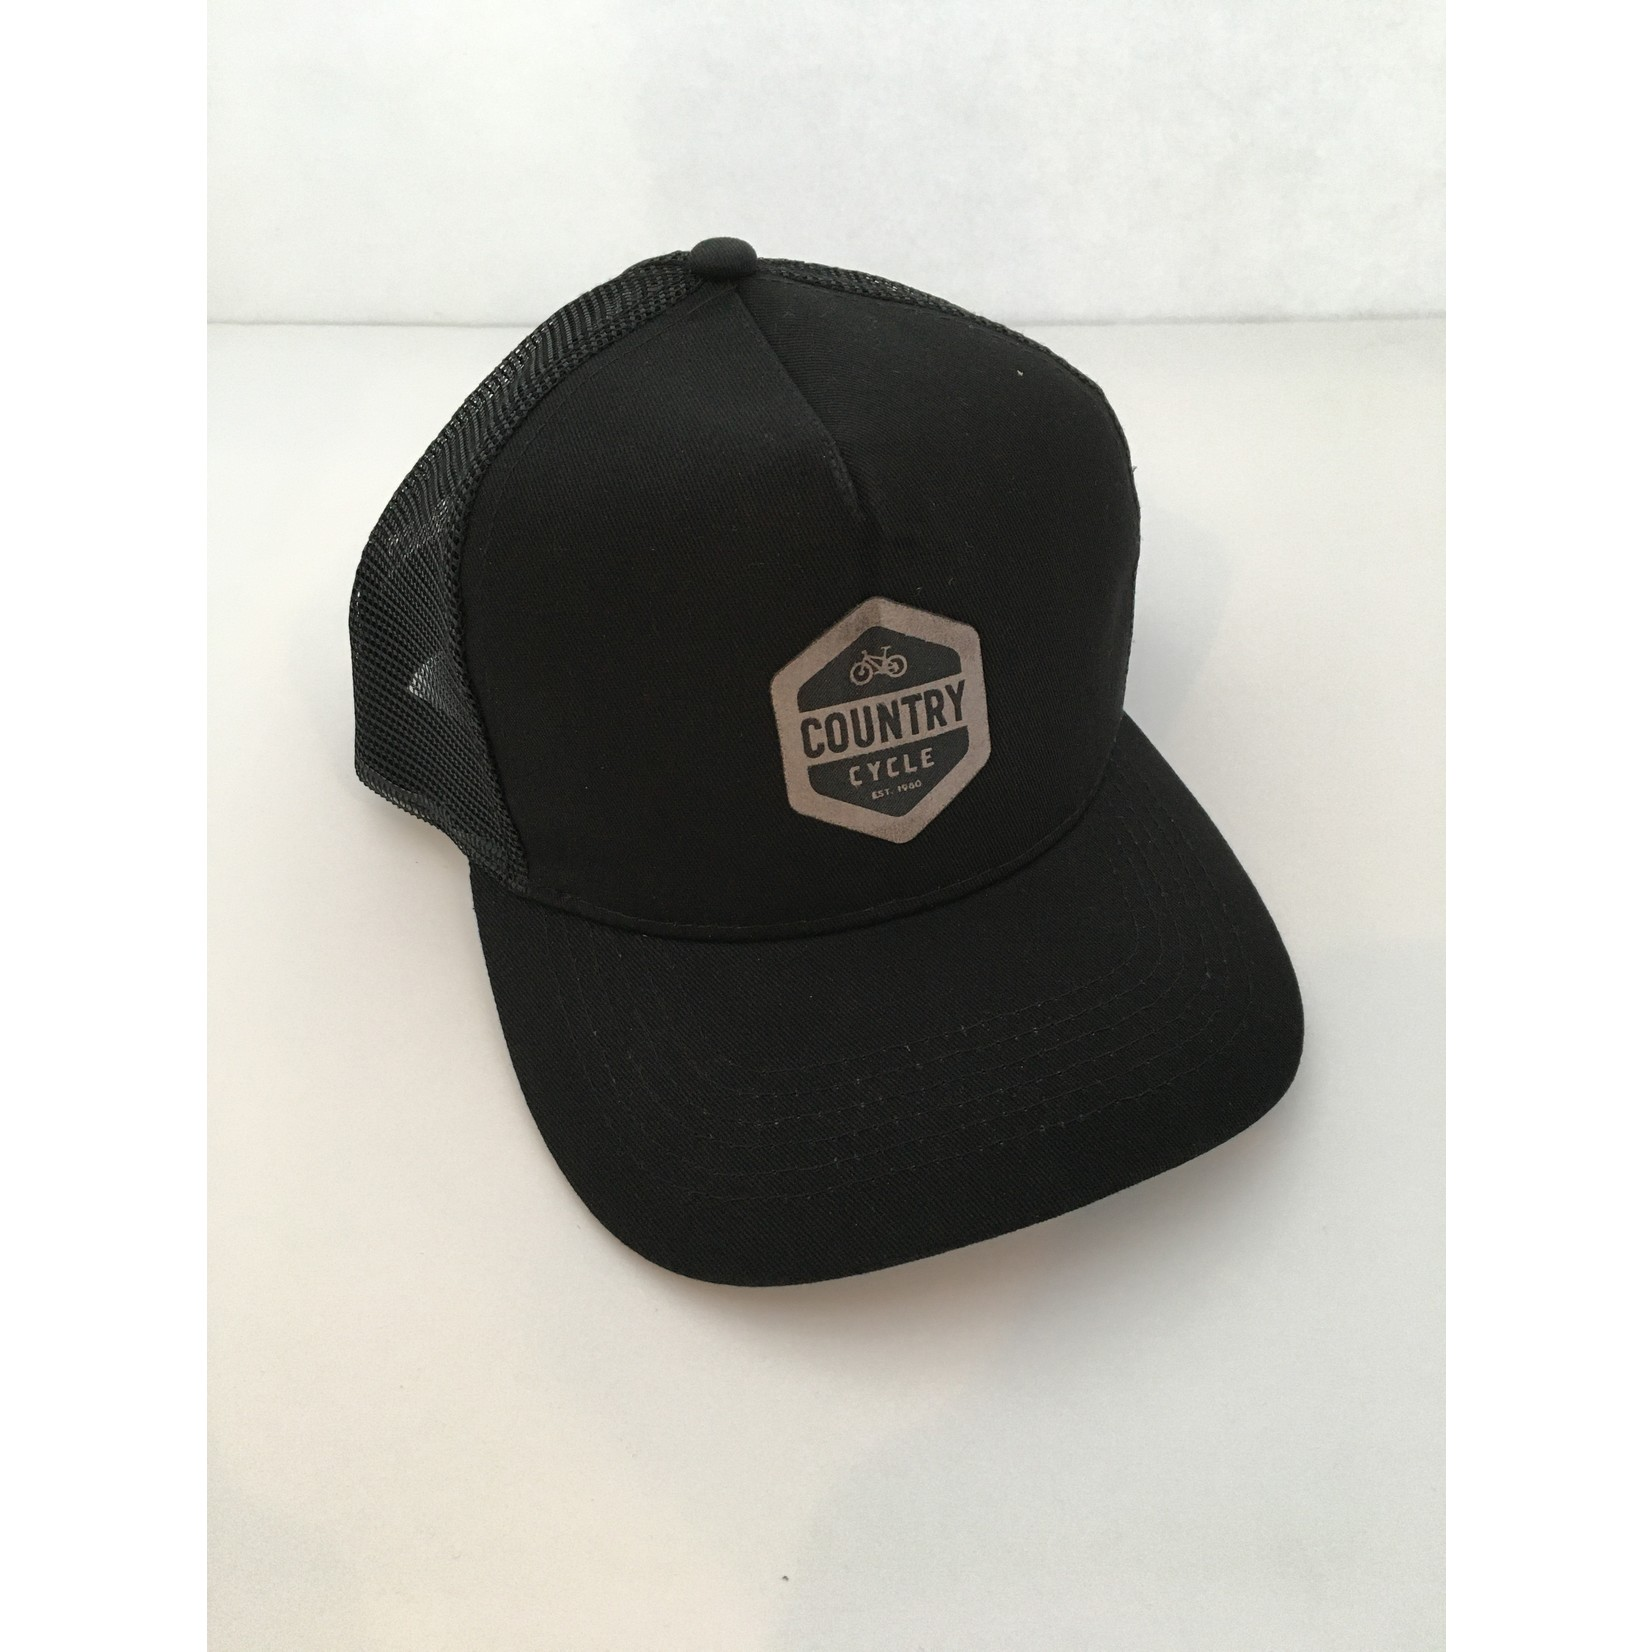 Stormtech Country Cycle Trucker Hat- Black